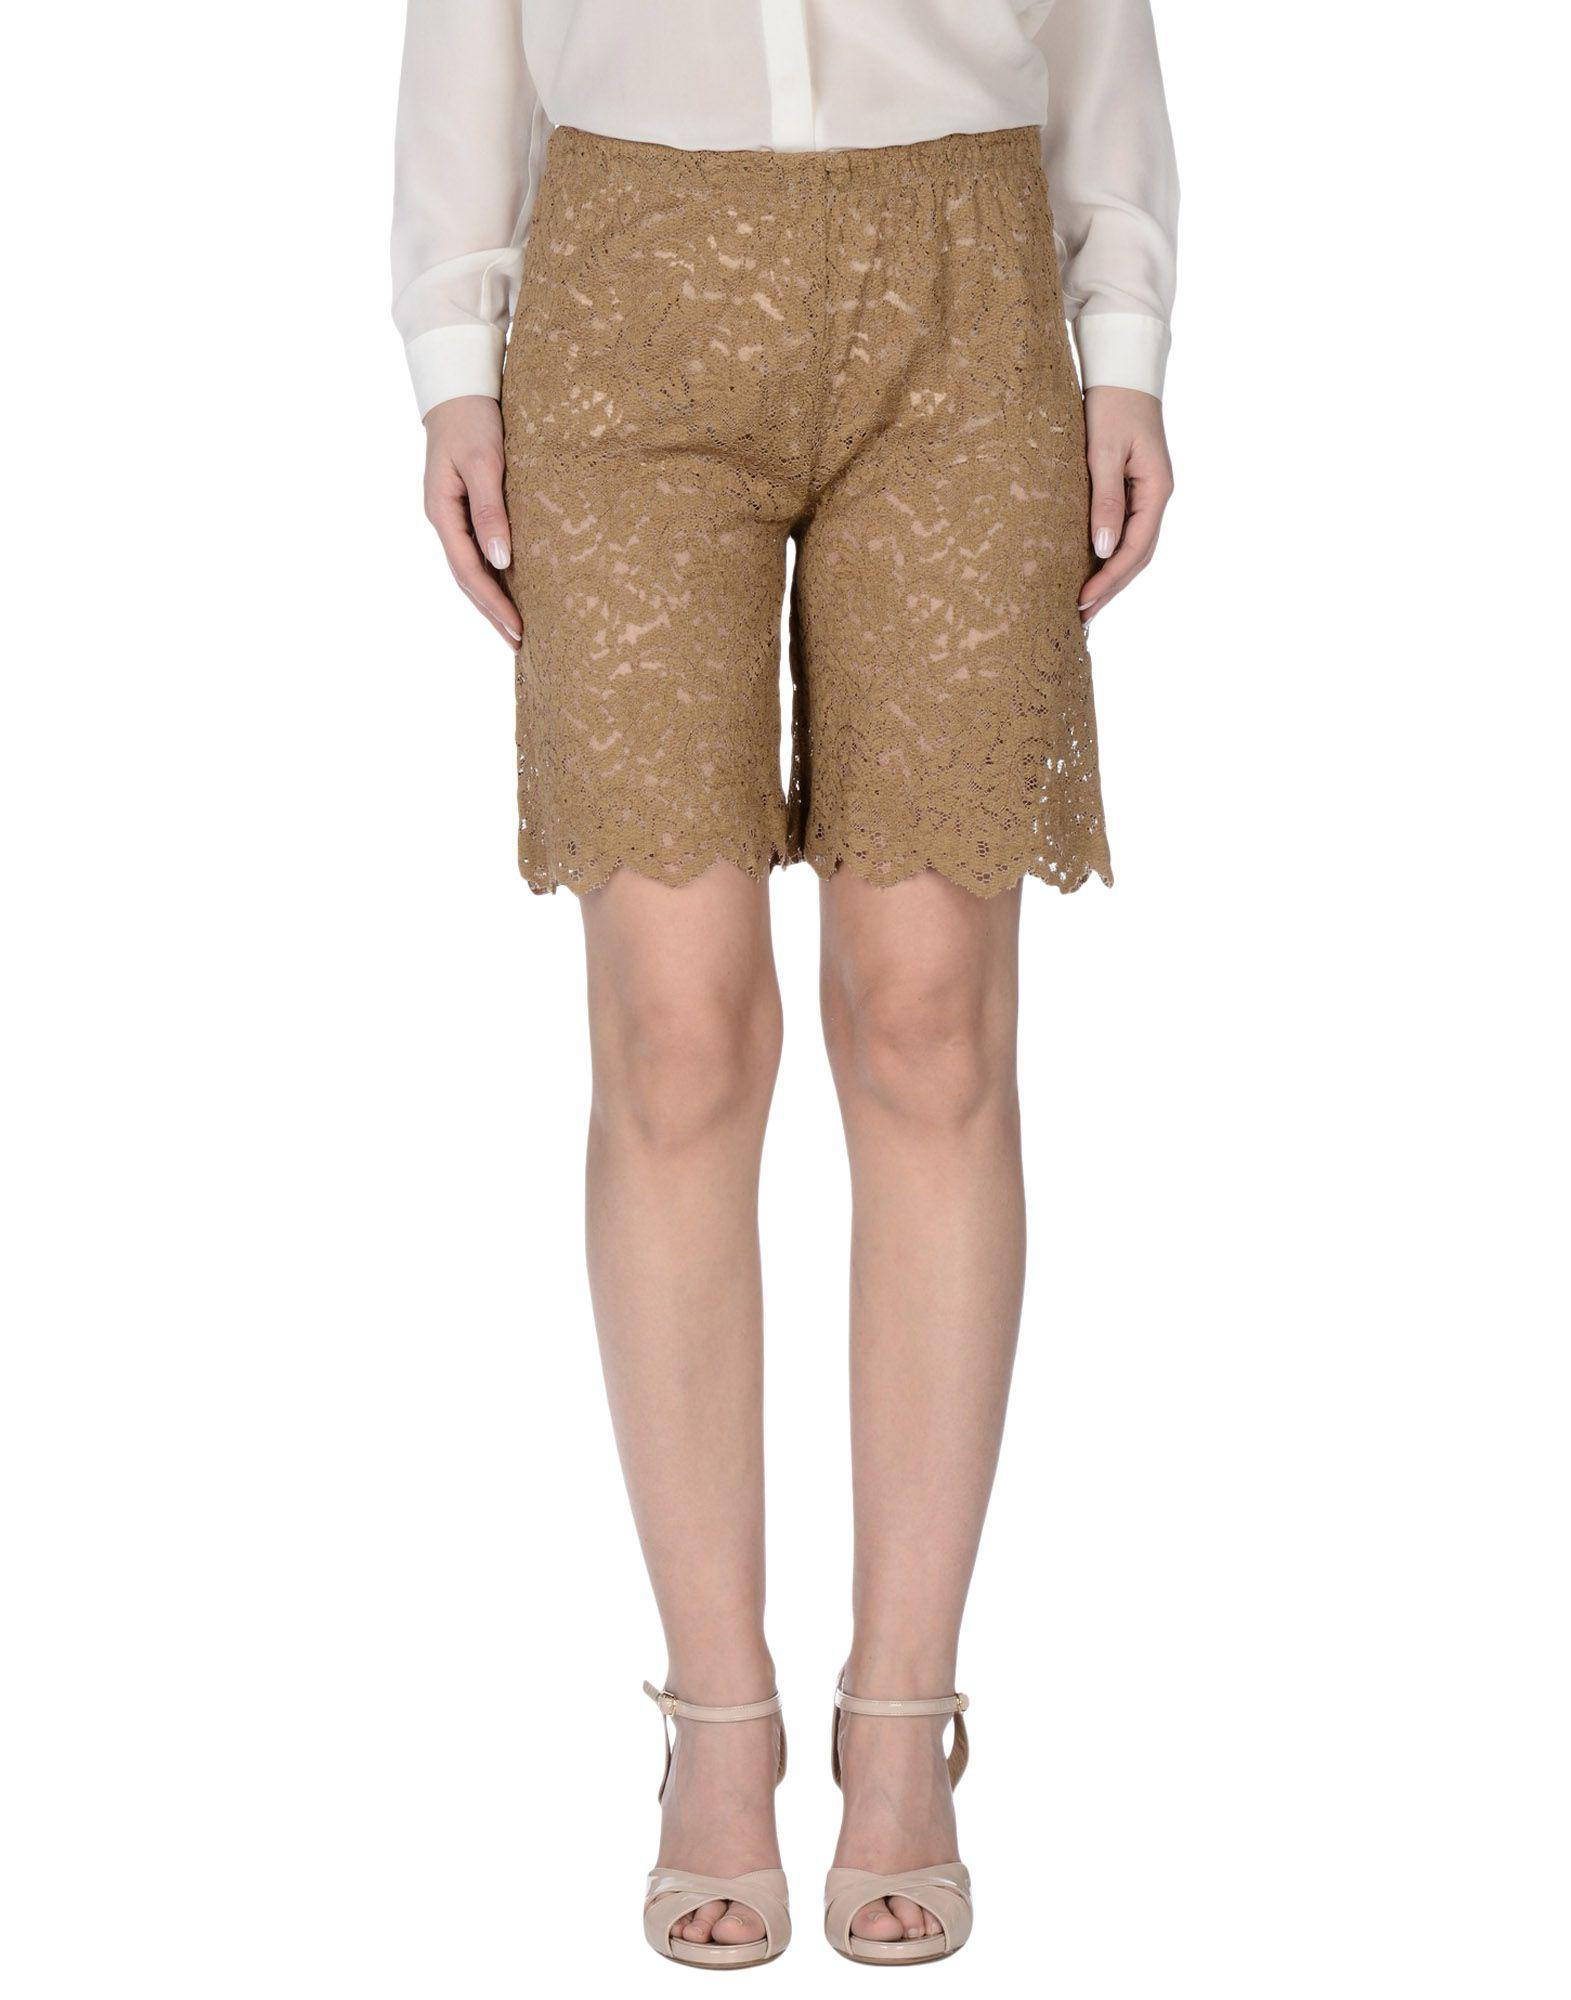 TROUSERS - Bermuda shorts Fontana Couture Shop Offer Online 100% Original For Sale Cheap Recommend eb8KtC9lC